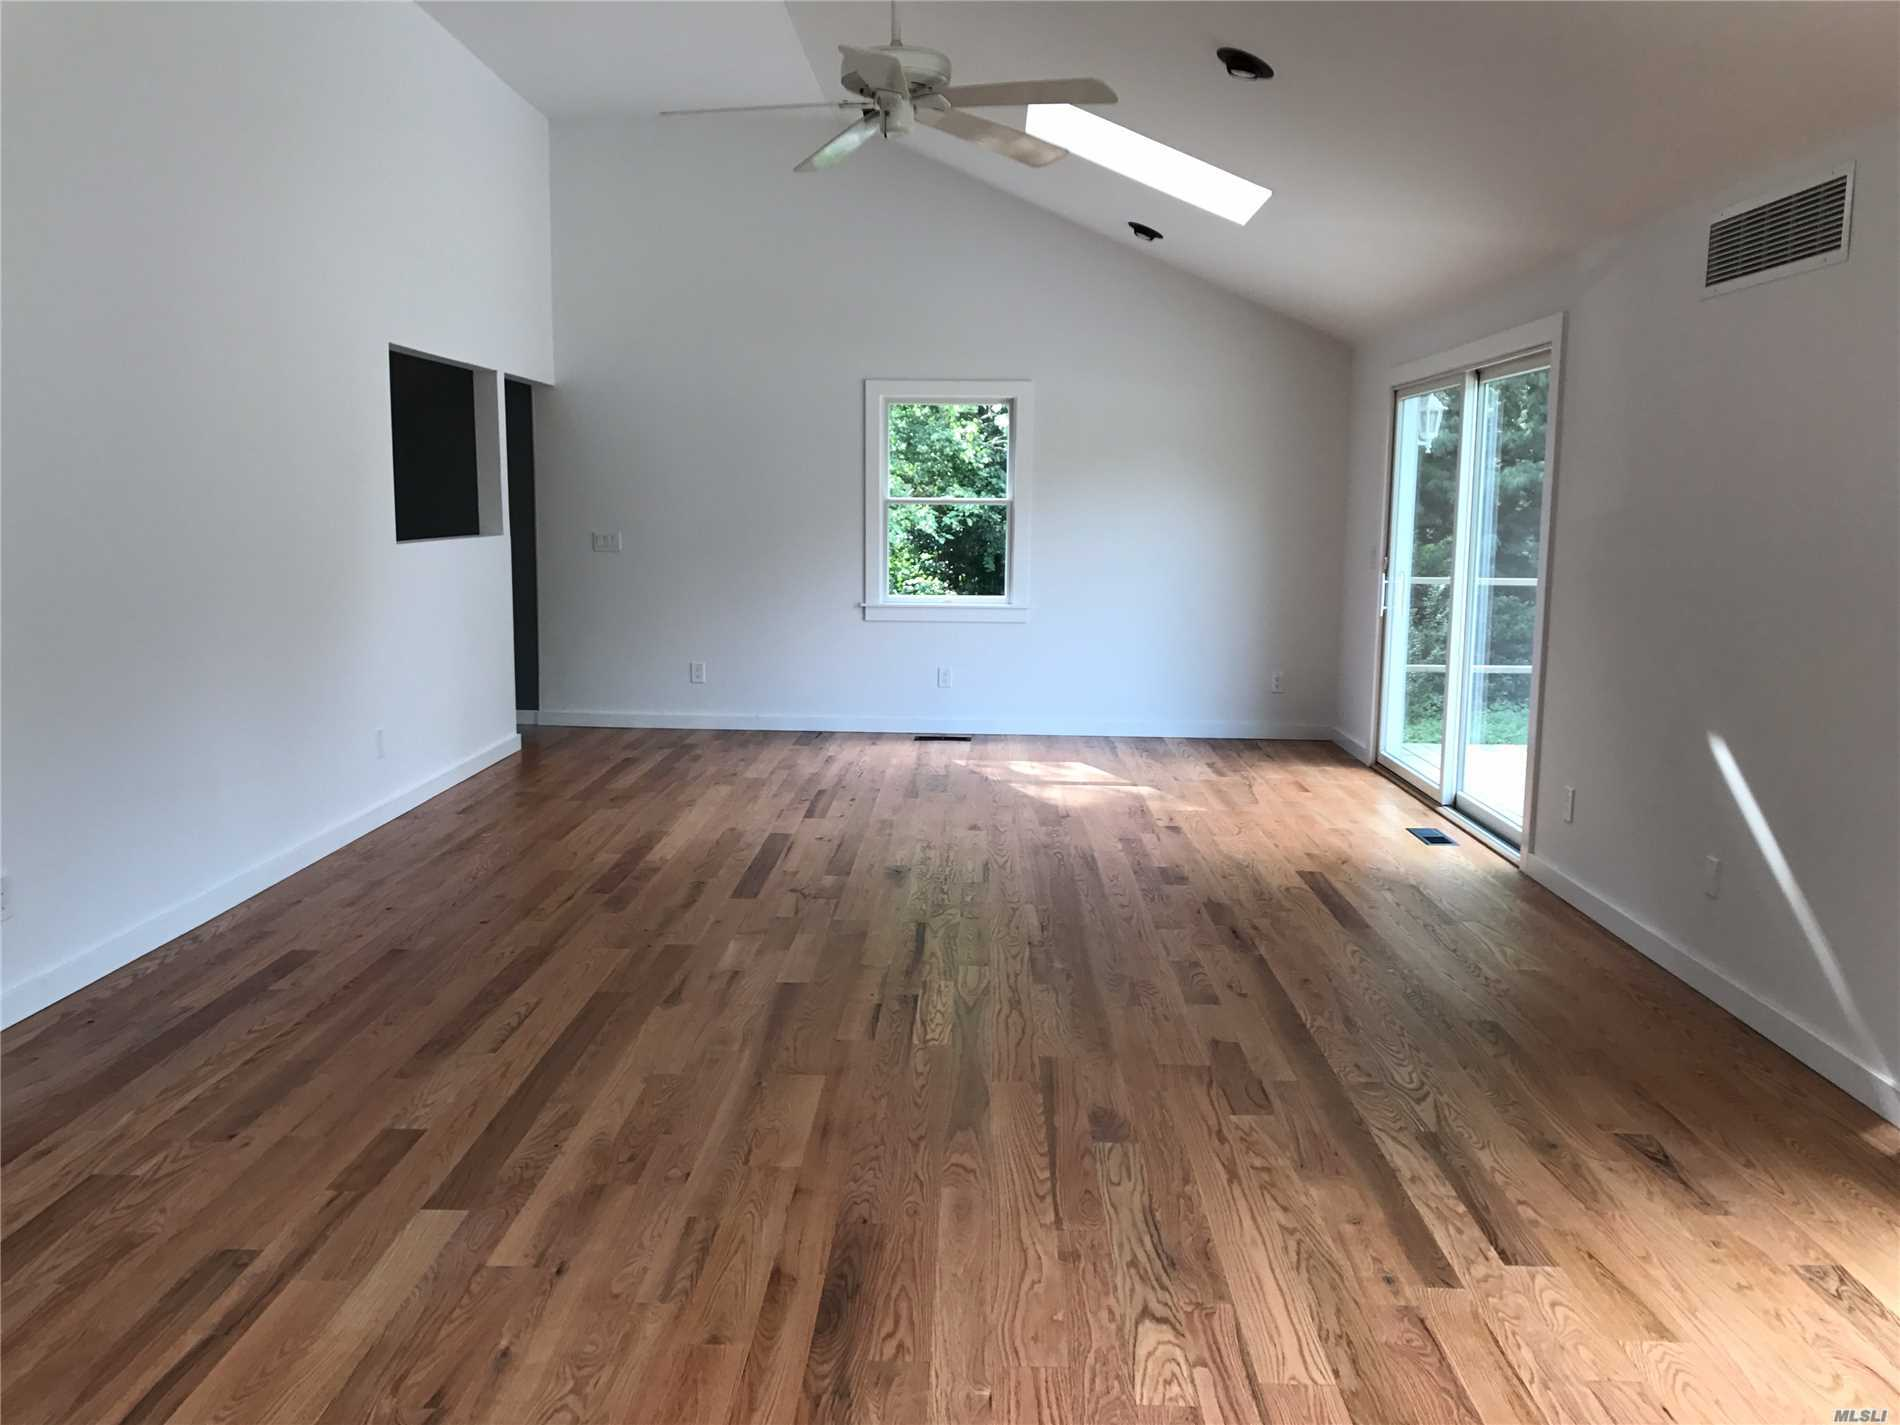 Beautiful updated expanded ranch with 4 bedrooms 2 bath, huge living room with 2 sliding doors to back deck and yard,  family room, 2 huge basements with outside entrance, brand new kitchen and appliances, hard wood floors through out the whole house. flag lot, very private with a long drive way.